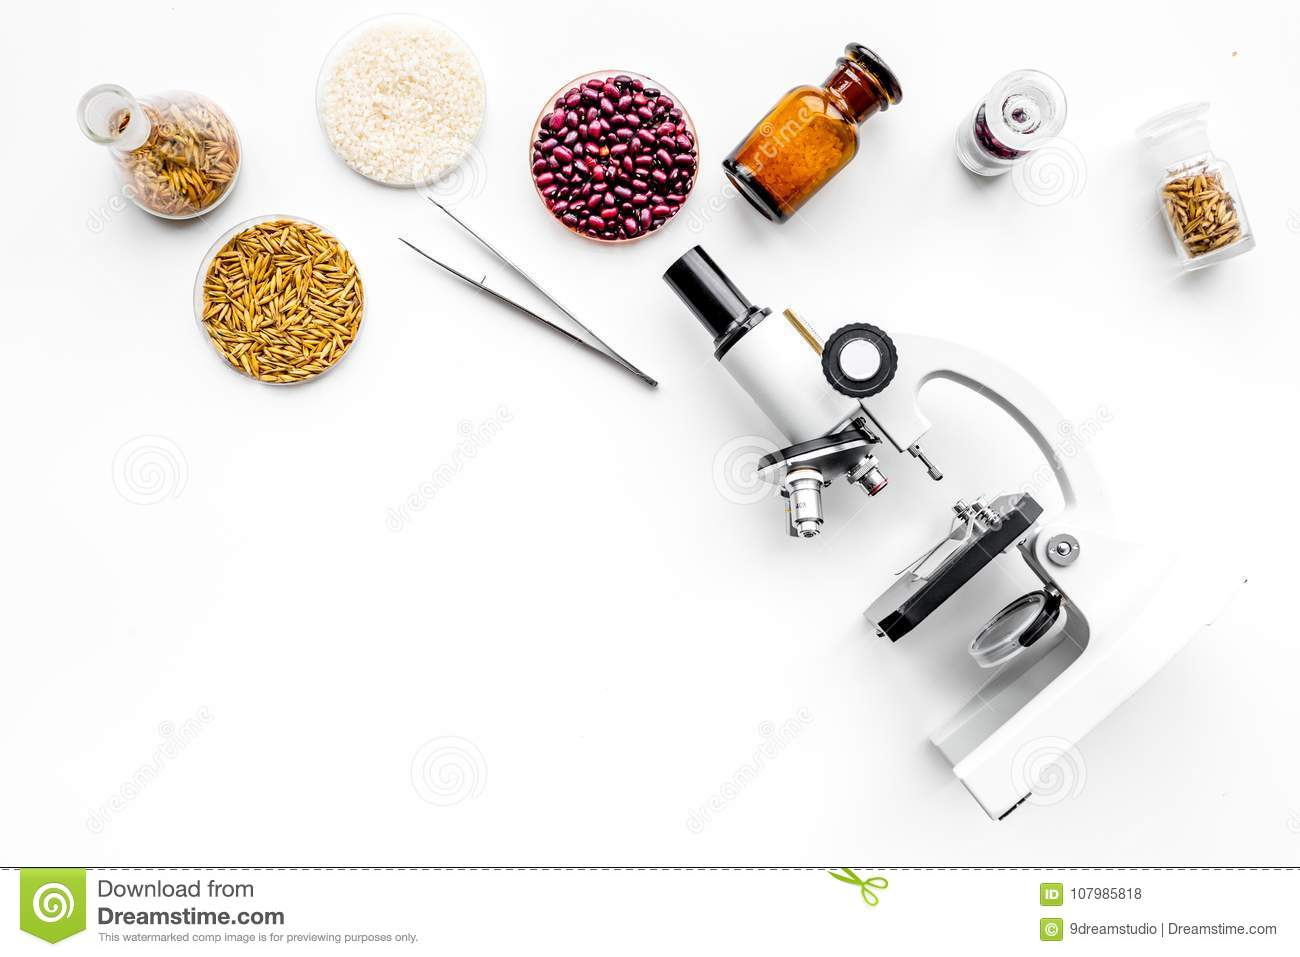 Food safety. Wheat, rice and red beans near microscope on white background top view copy space